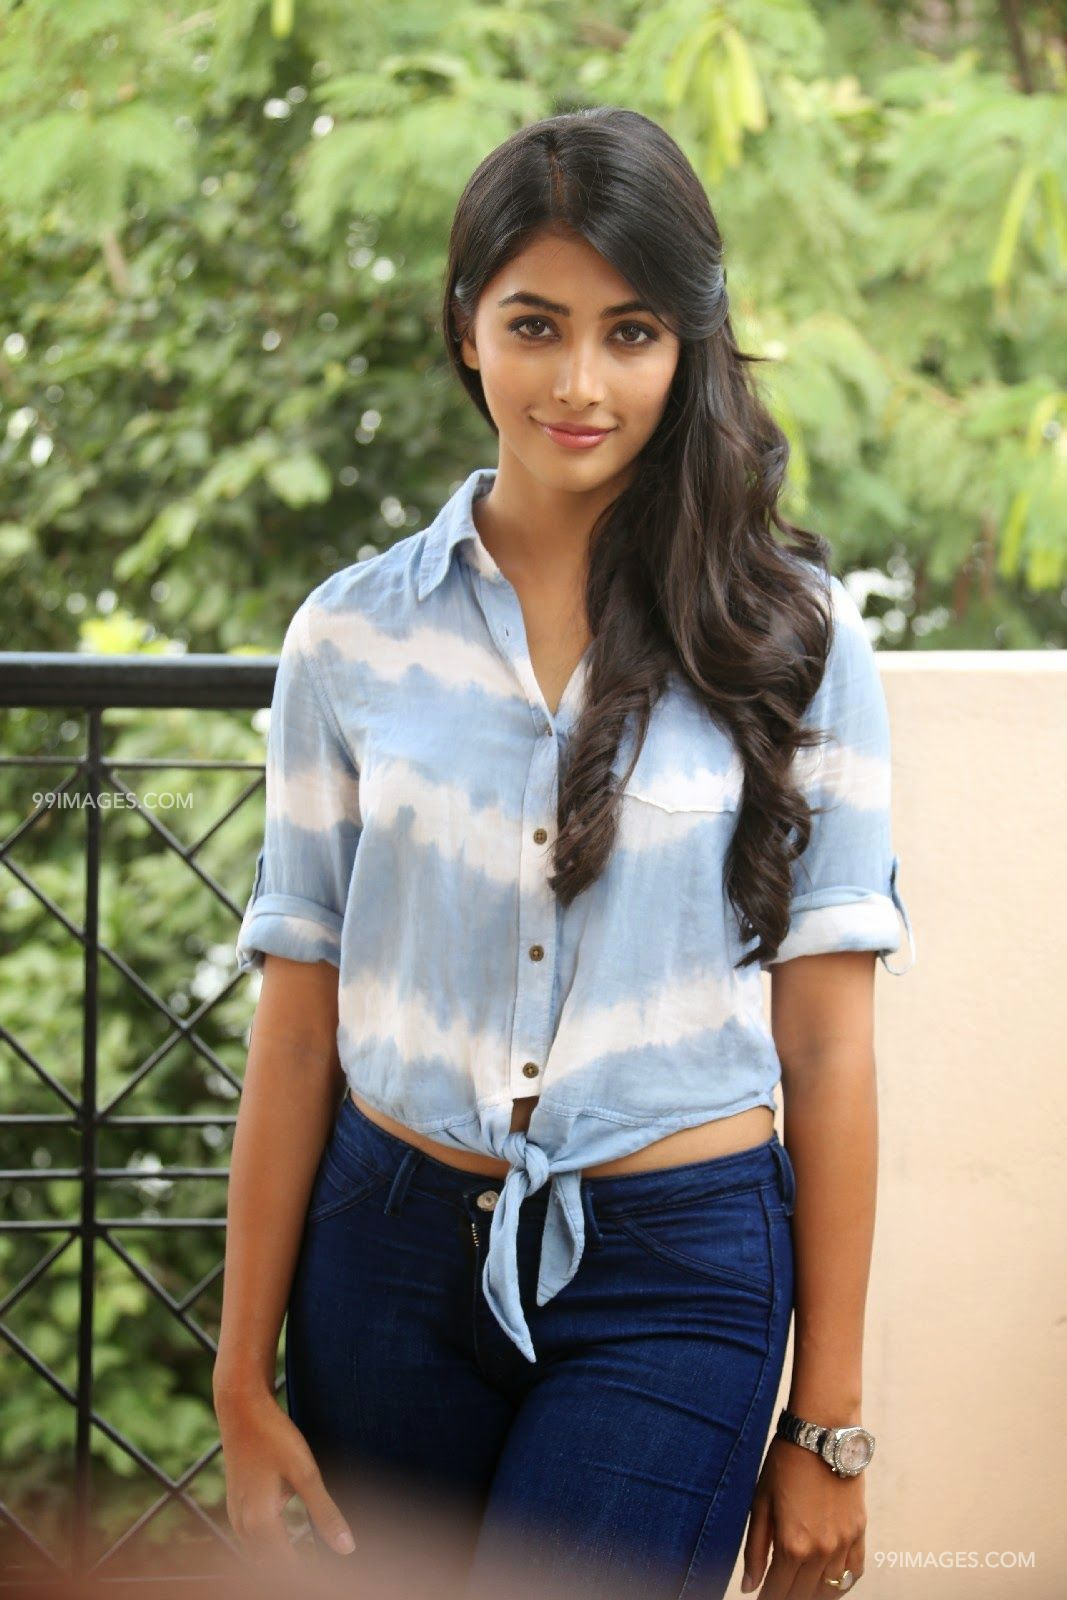 Pooja Hegde Hot Beautiful HD Photos / Wallpapers, WhatsApp DP (1080p) (7448) - Pooja Hegde